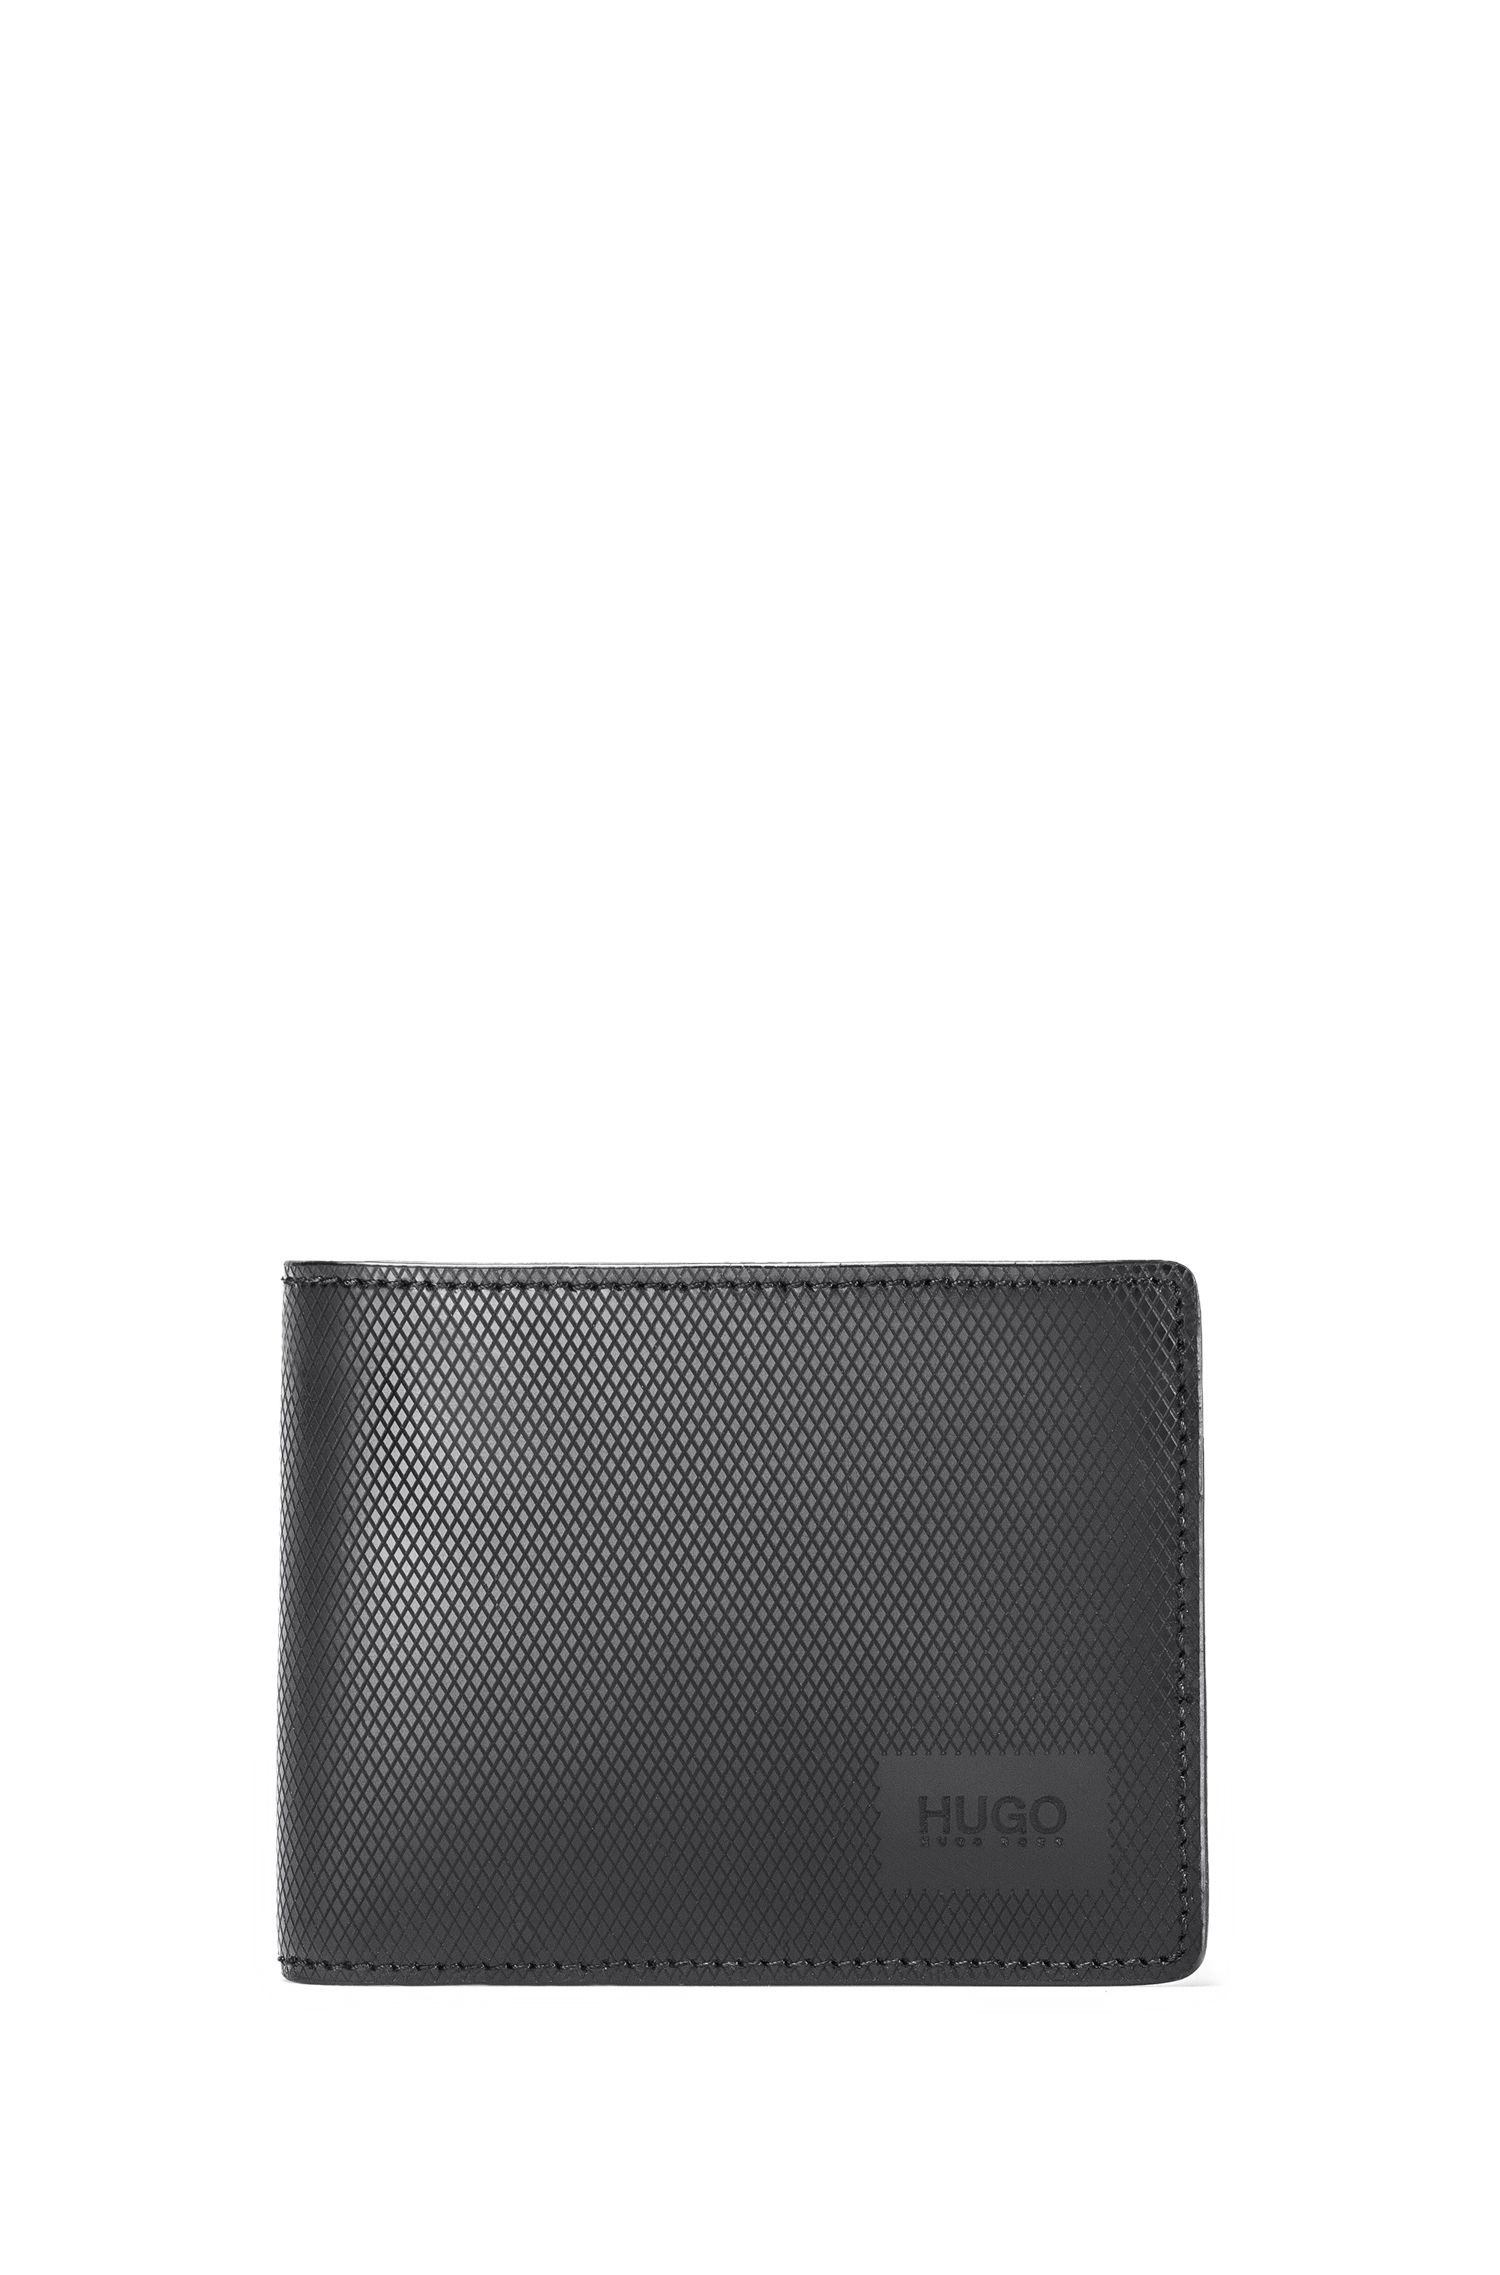 Leather Billfold Wallet | Mercury 6 CC